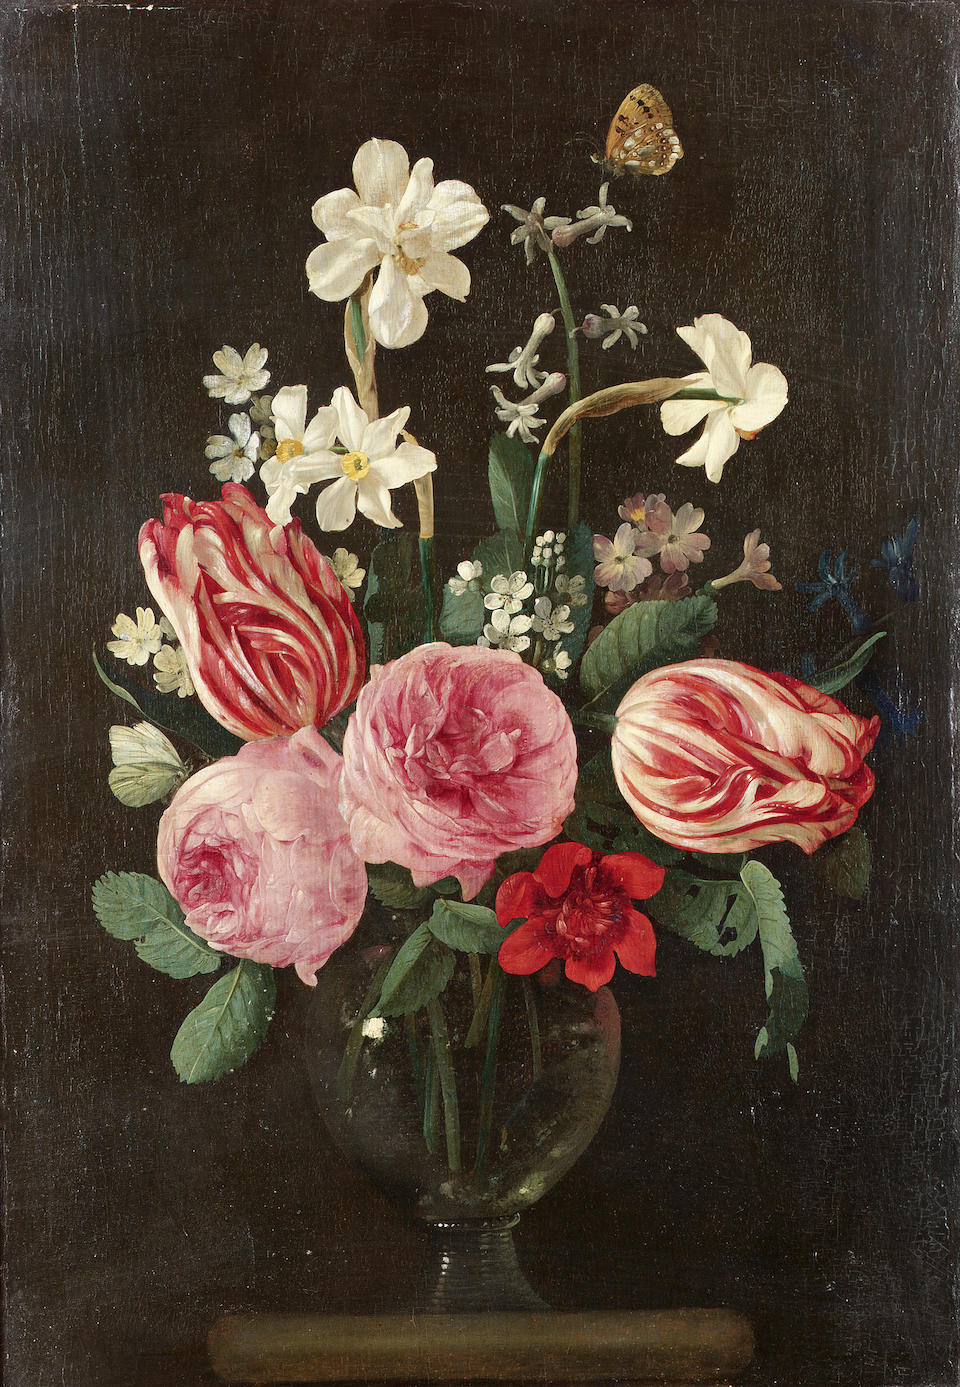 Jan Phillips van Thielen (Malines 1618-1667 Boisschot) Roses, narcissi, tulips and other flowers 42 x 30 cm. (16½ x 11¾ in.)